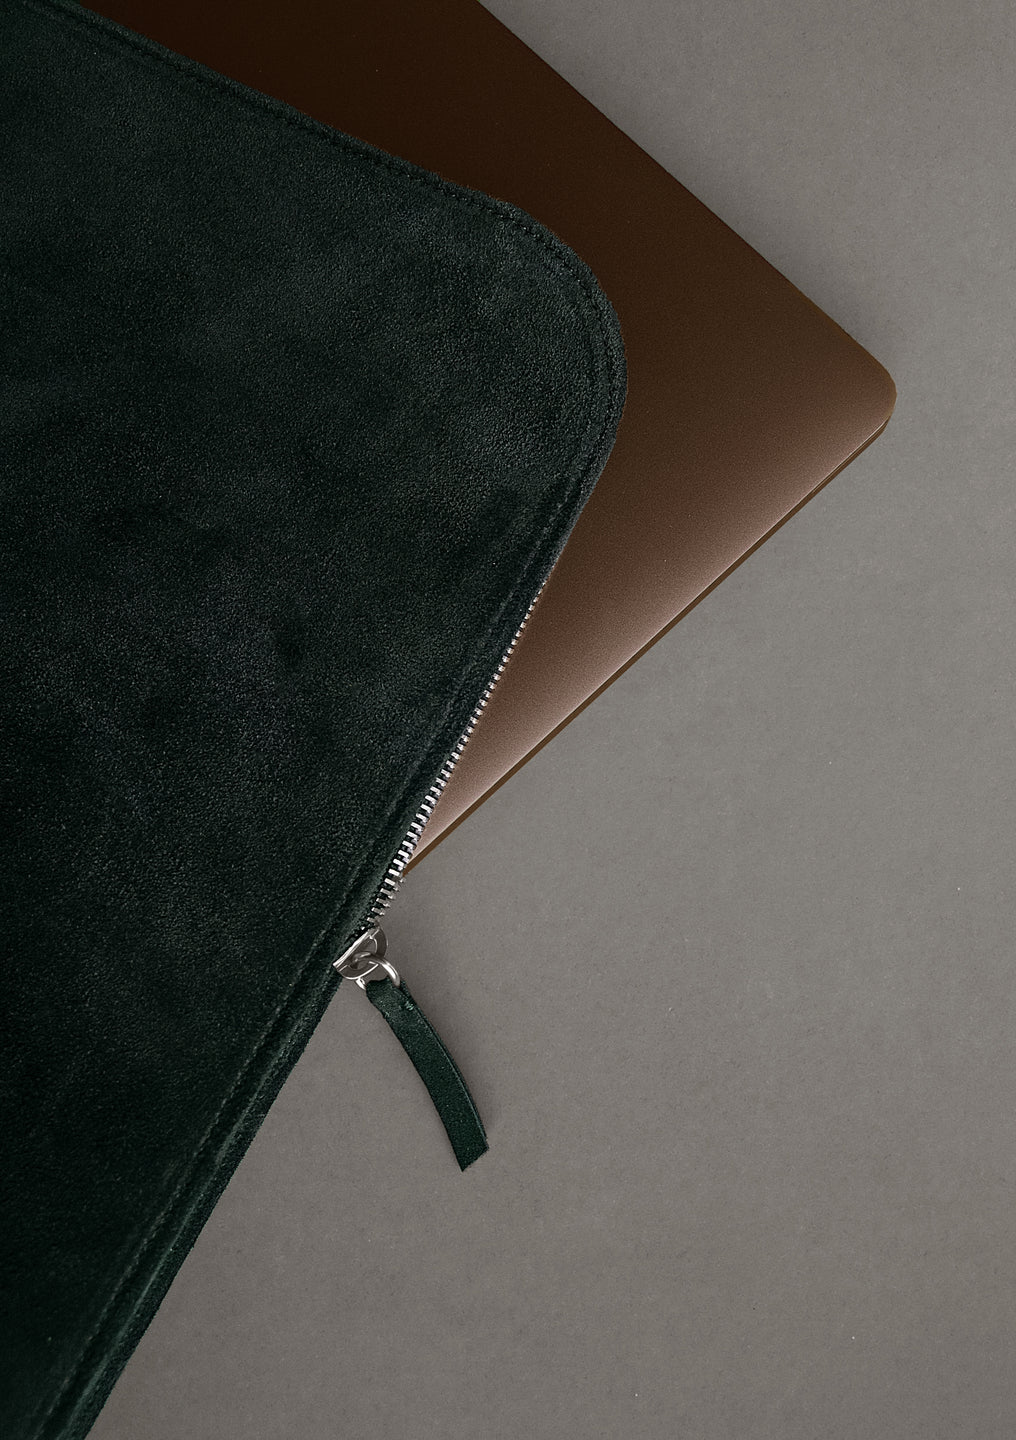 The Suede Folio in Green - The Suede Folio in Green